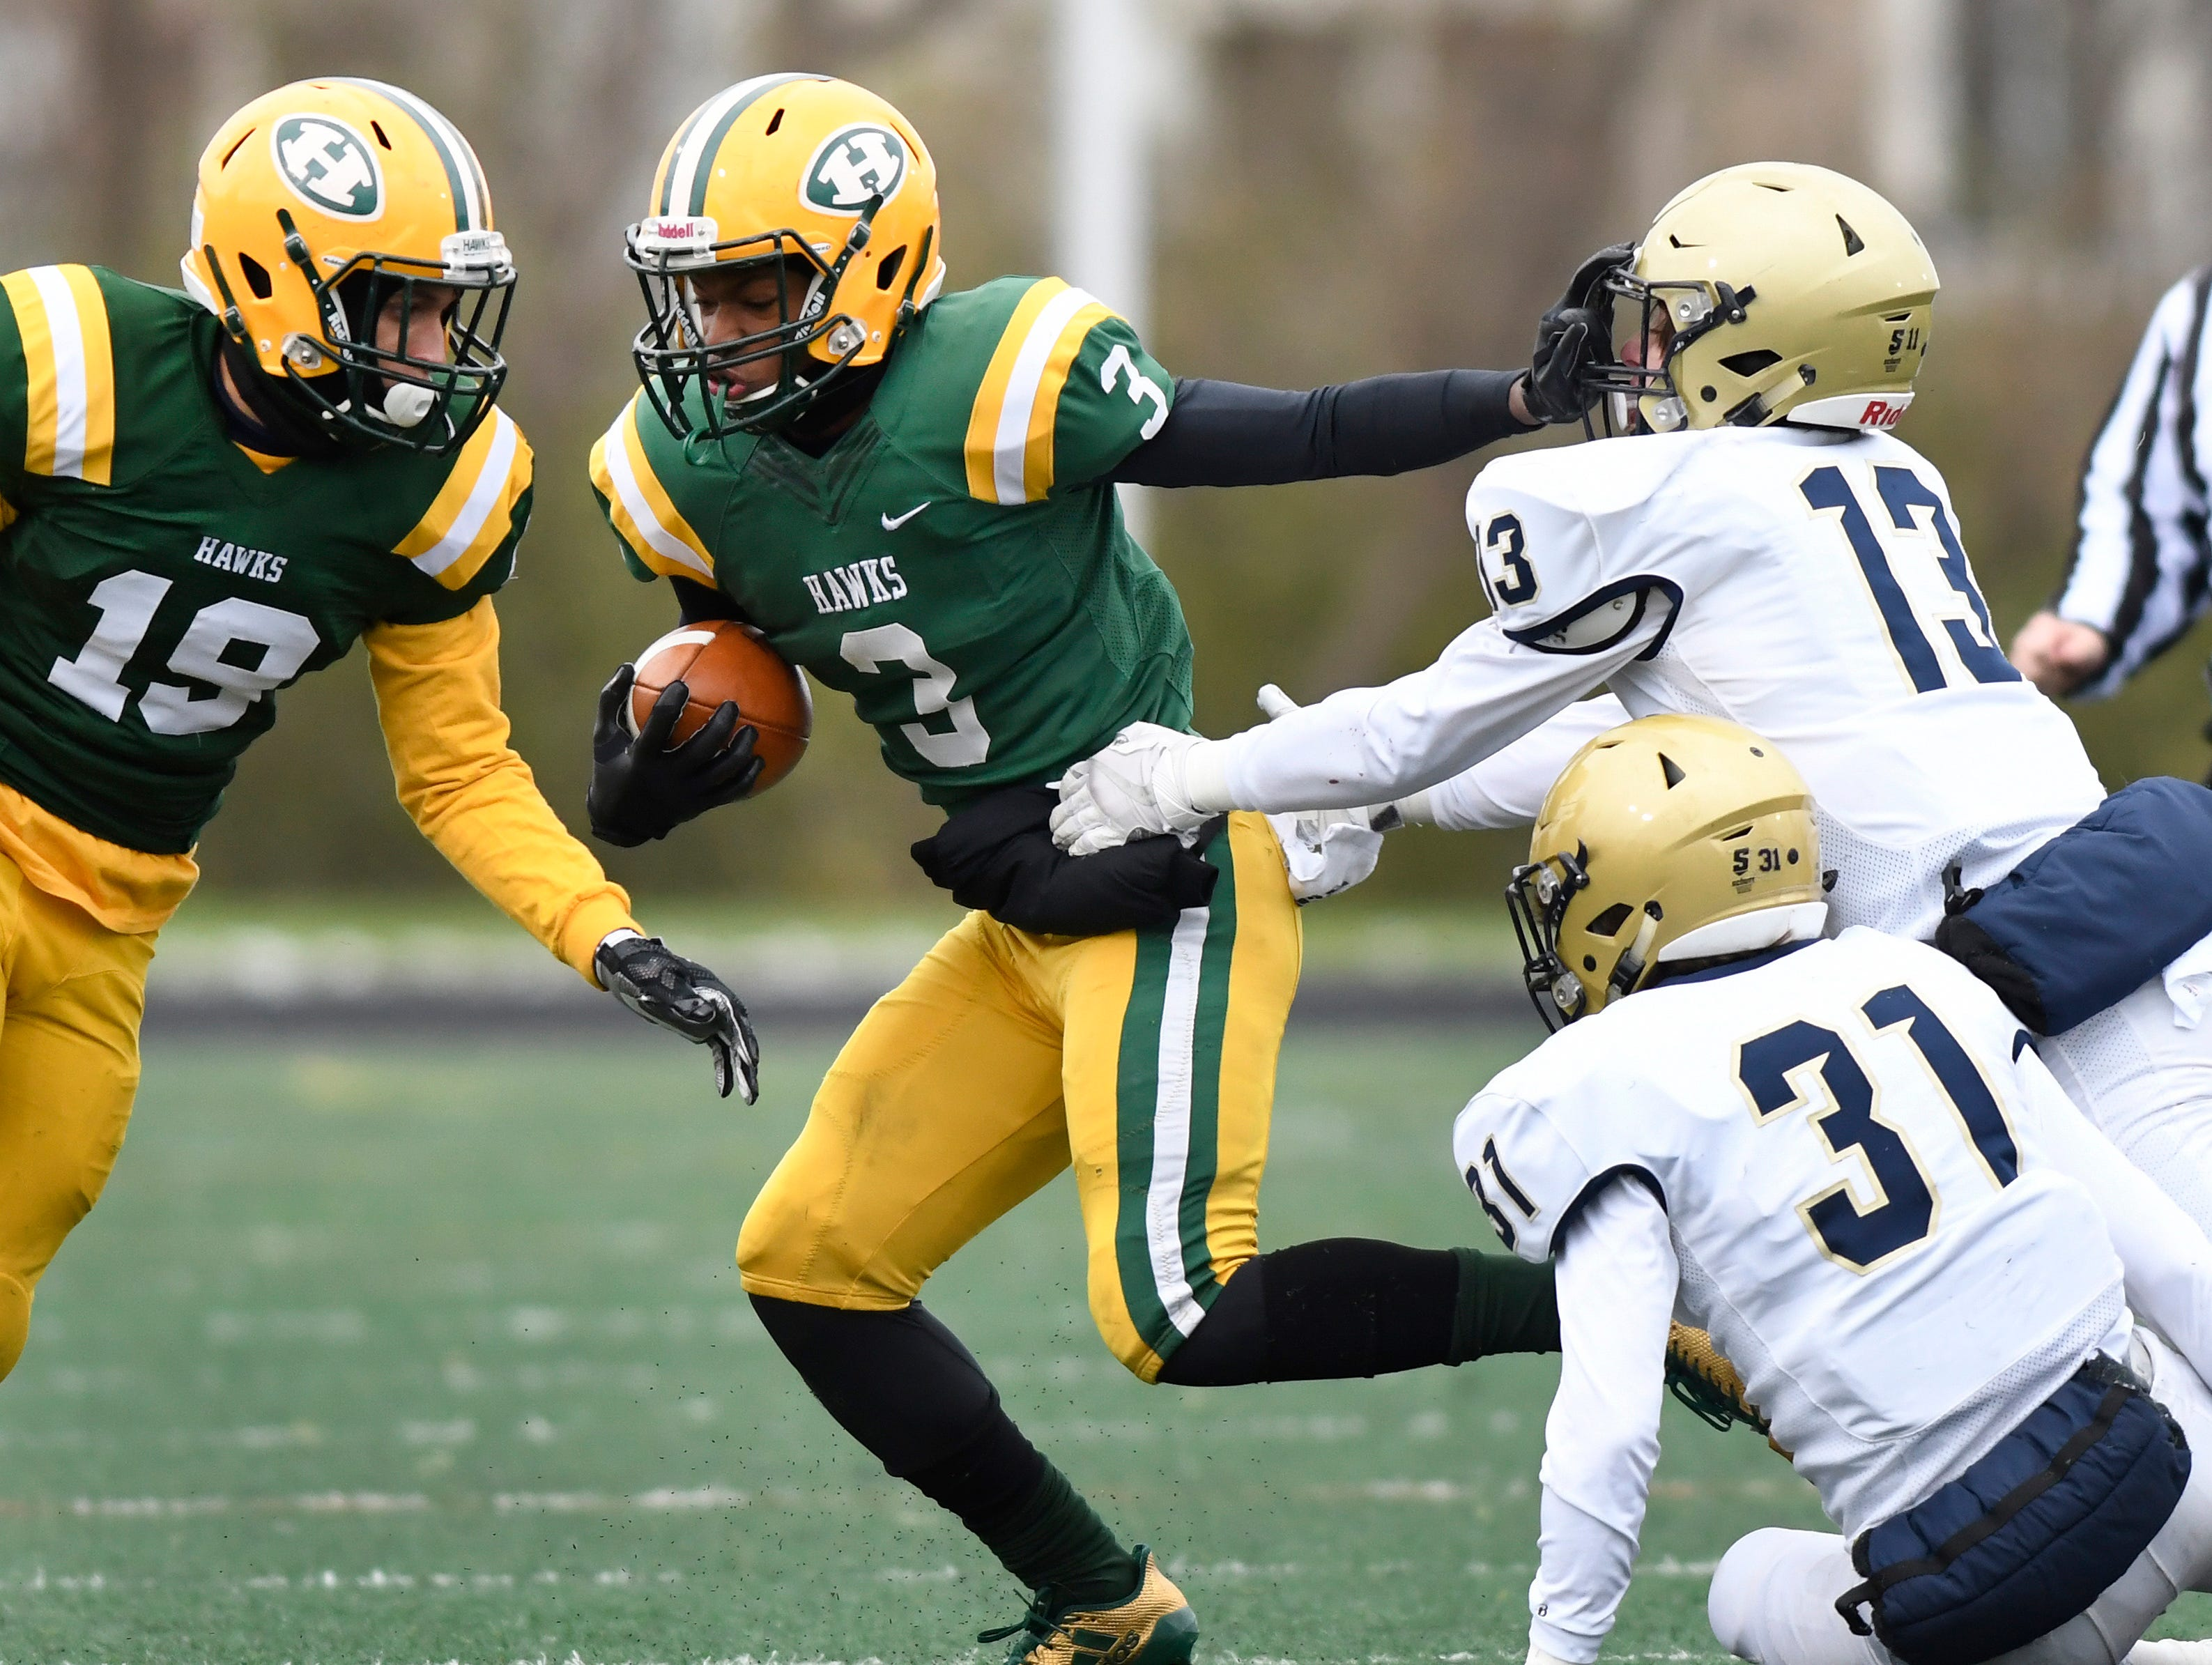 Farmington Hills Harrison running back Roderick Heard (3) runs for yardage as he pushes off during the first quarter.